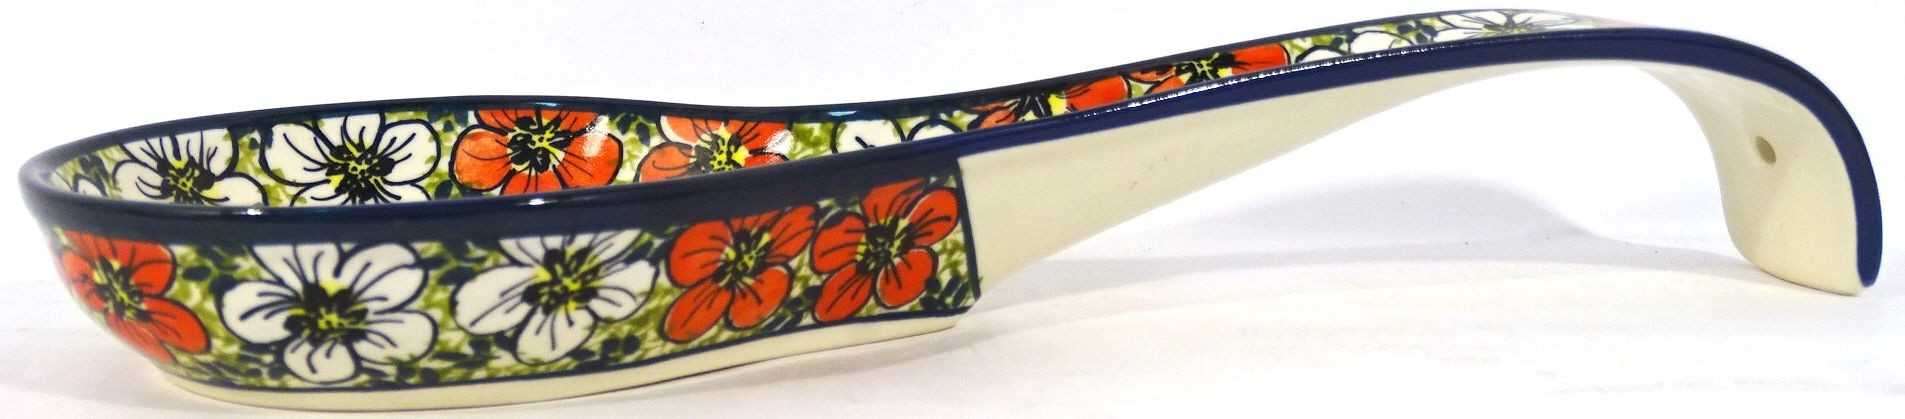 "Polish Pottery RED BACOPA 12"" Ladle-Spoon Stoneware Rest 